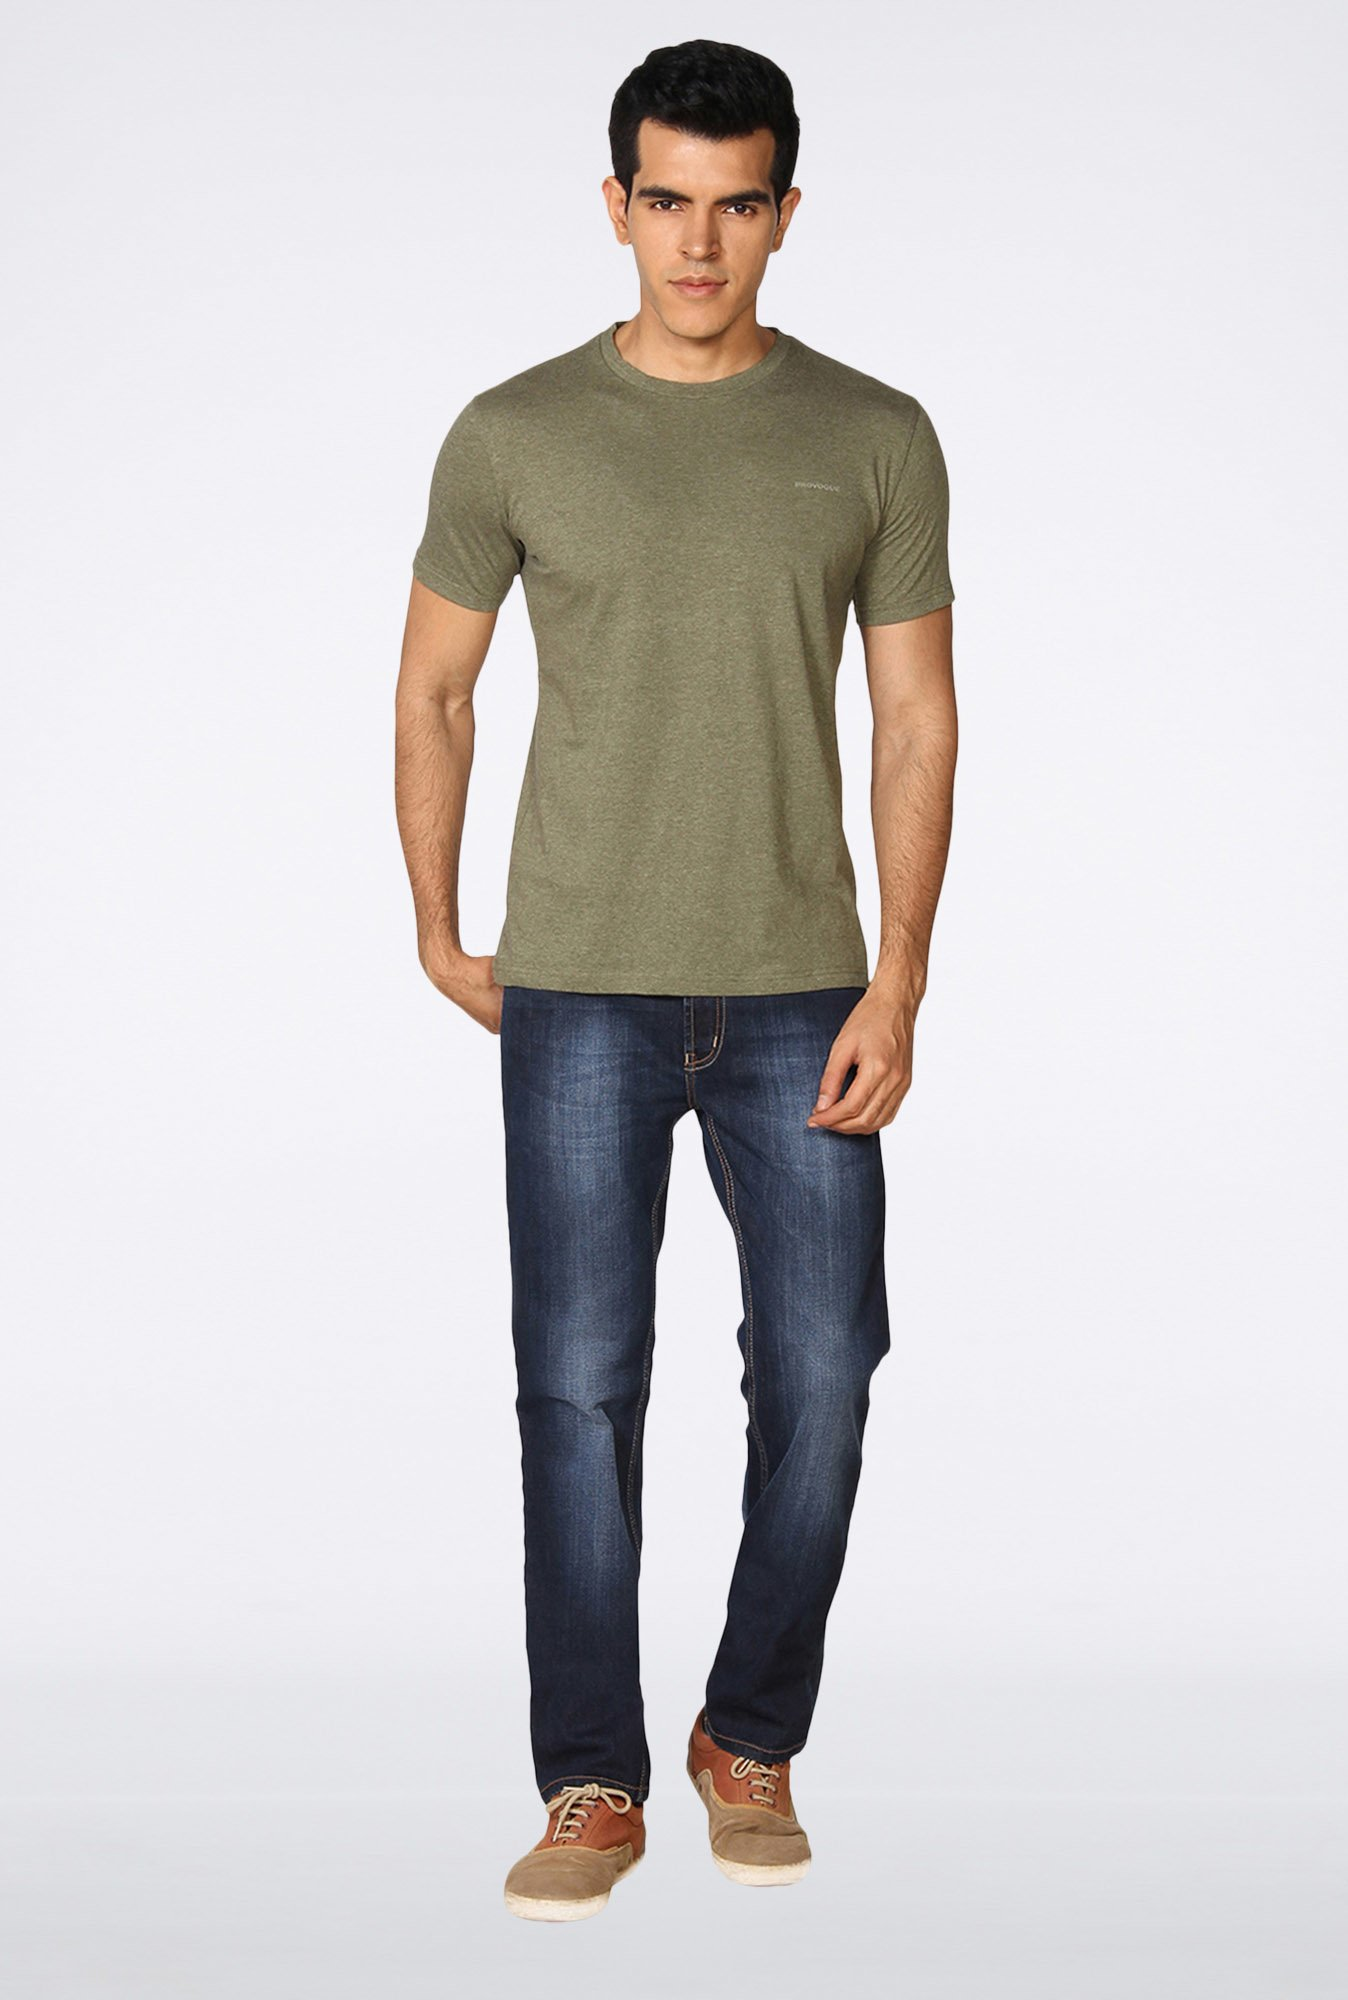 Provogue Moss Green T-Shirt